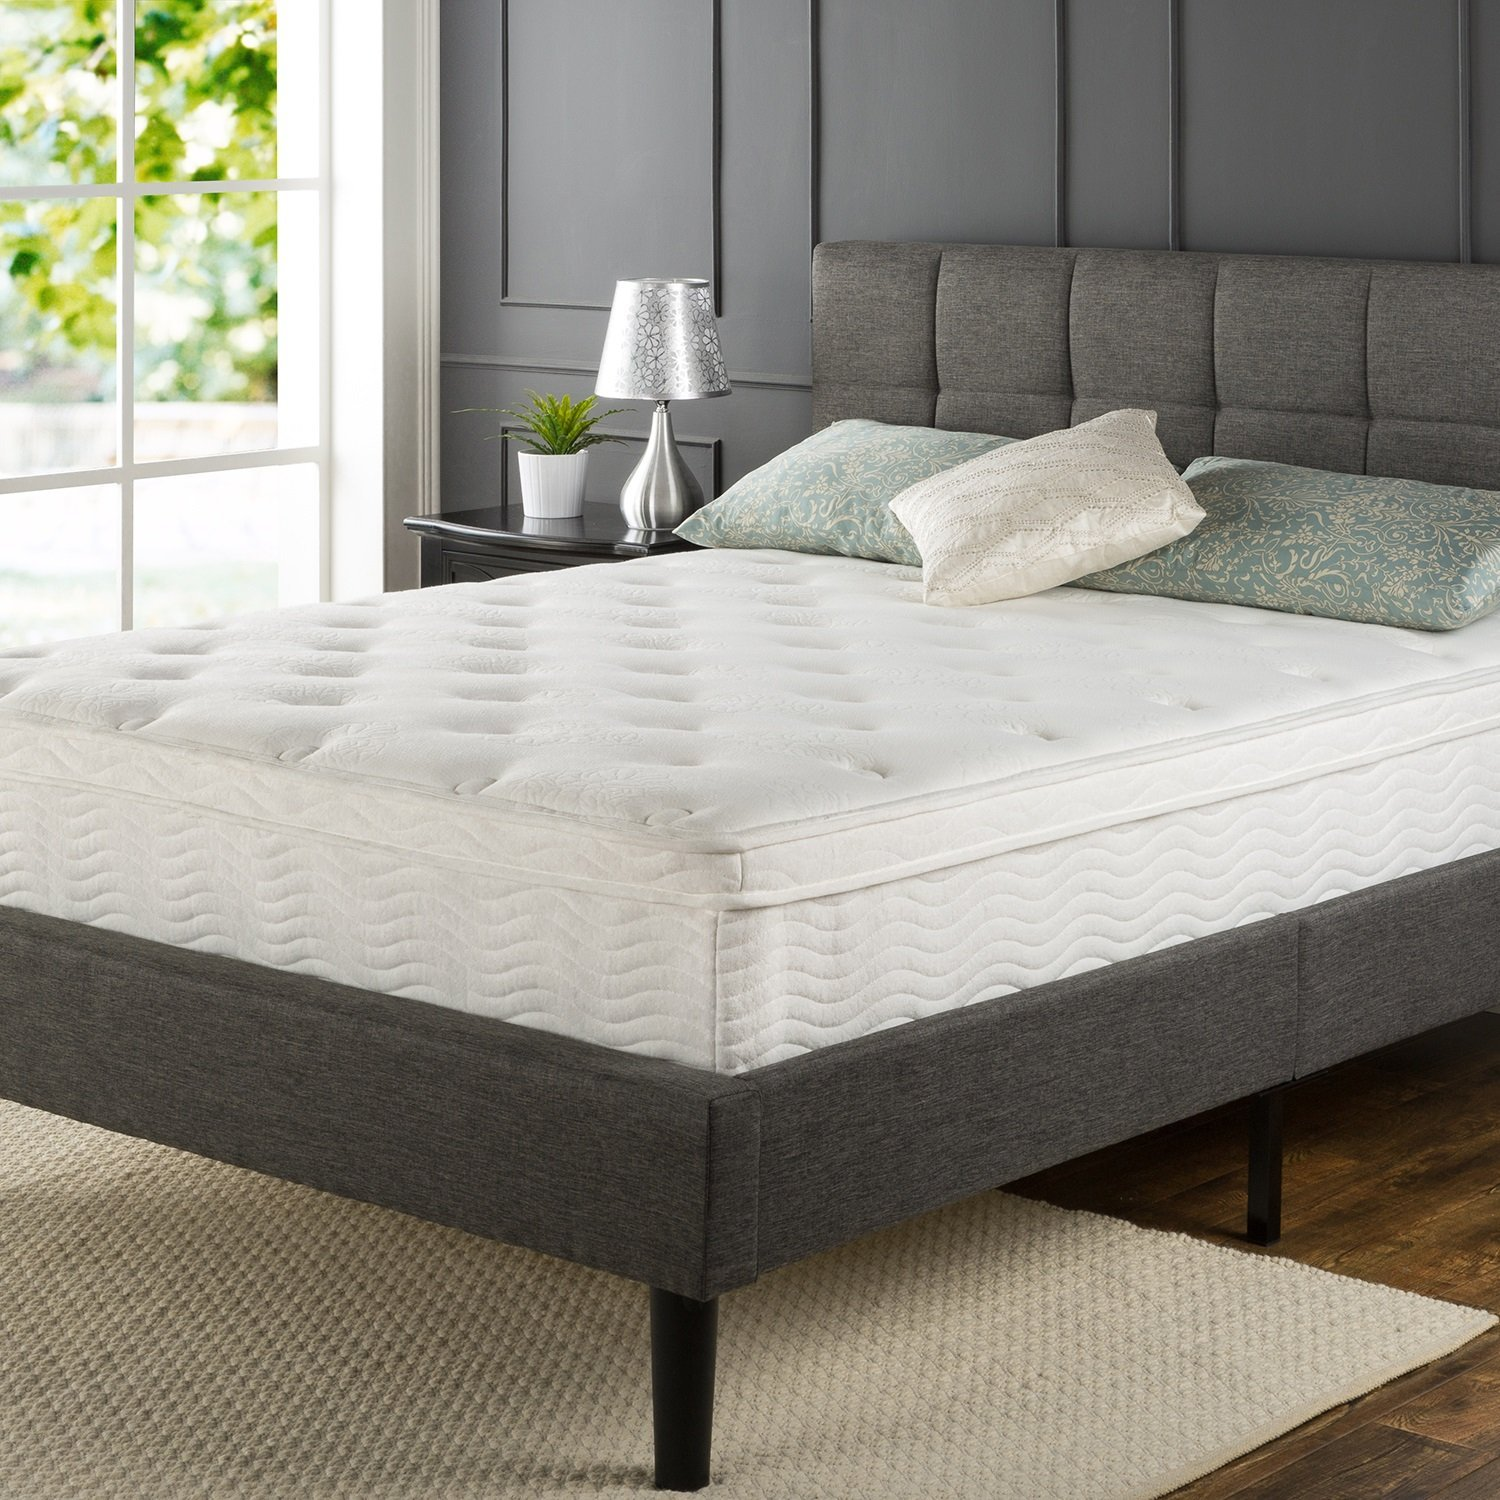 Zinus Pocketed Spring Euro Top iCoil Mattress